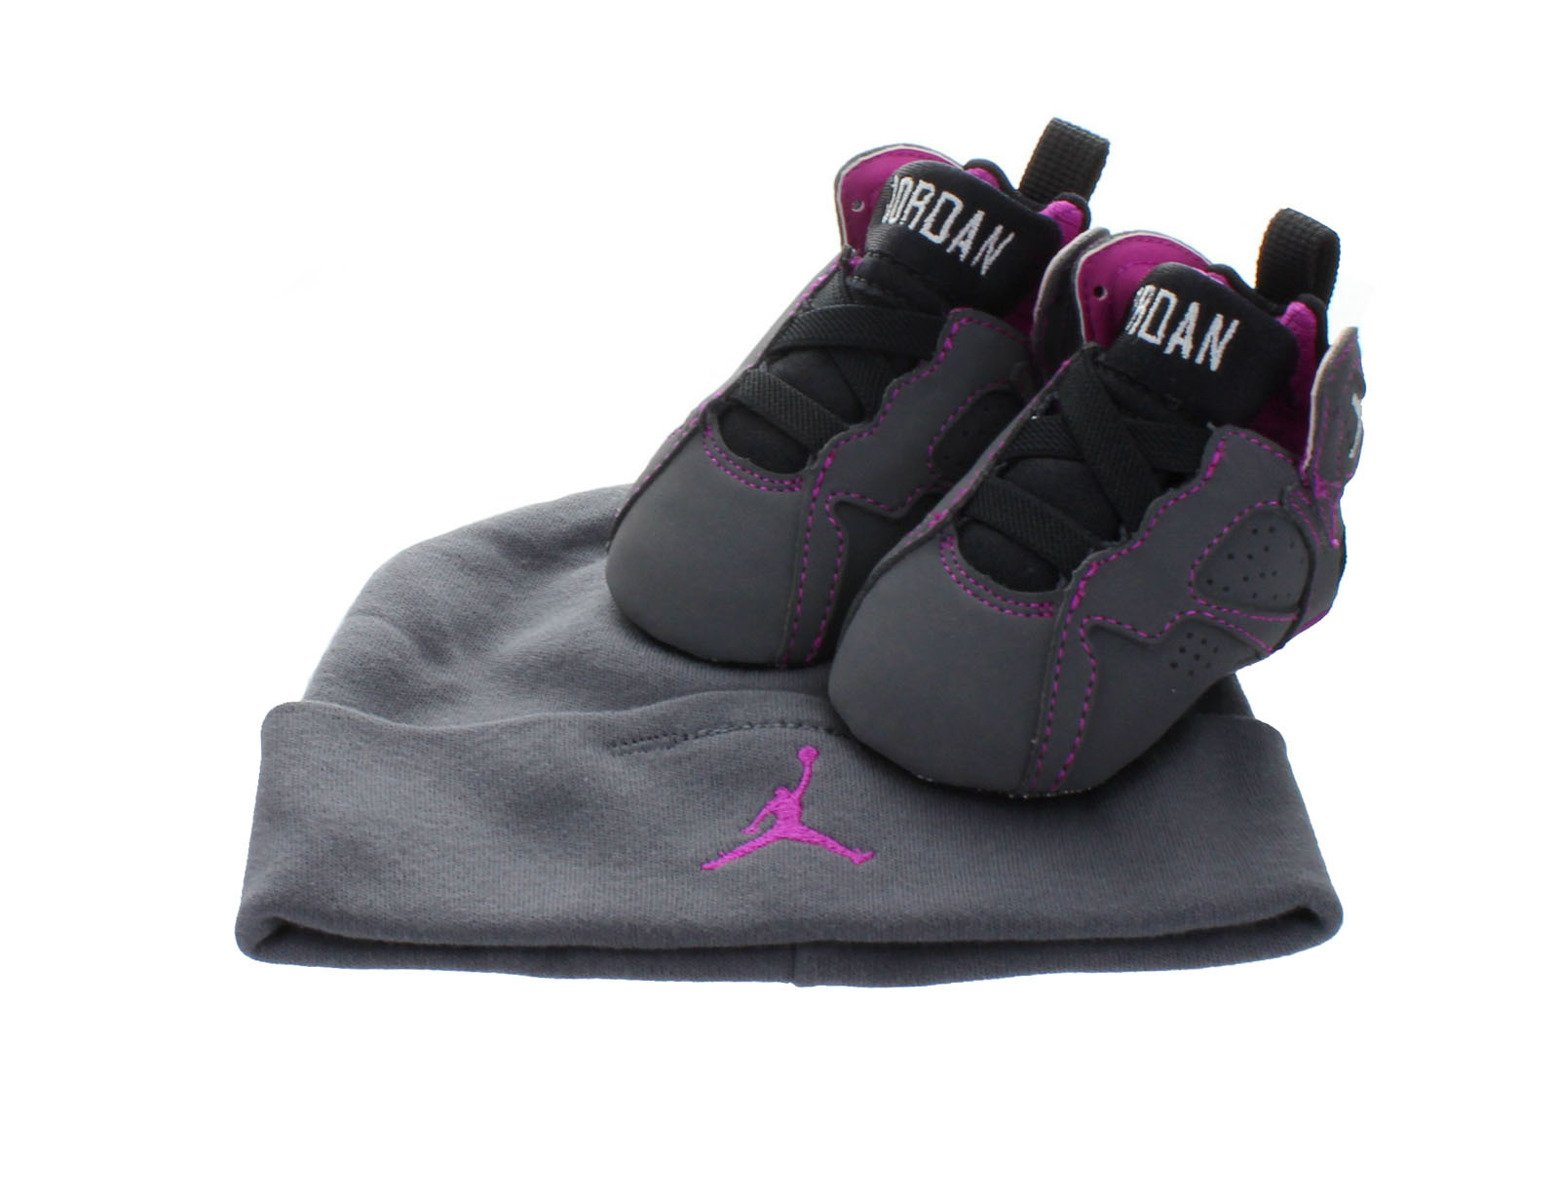 Newborn Air Jordan Shoes